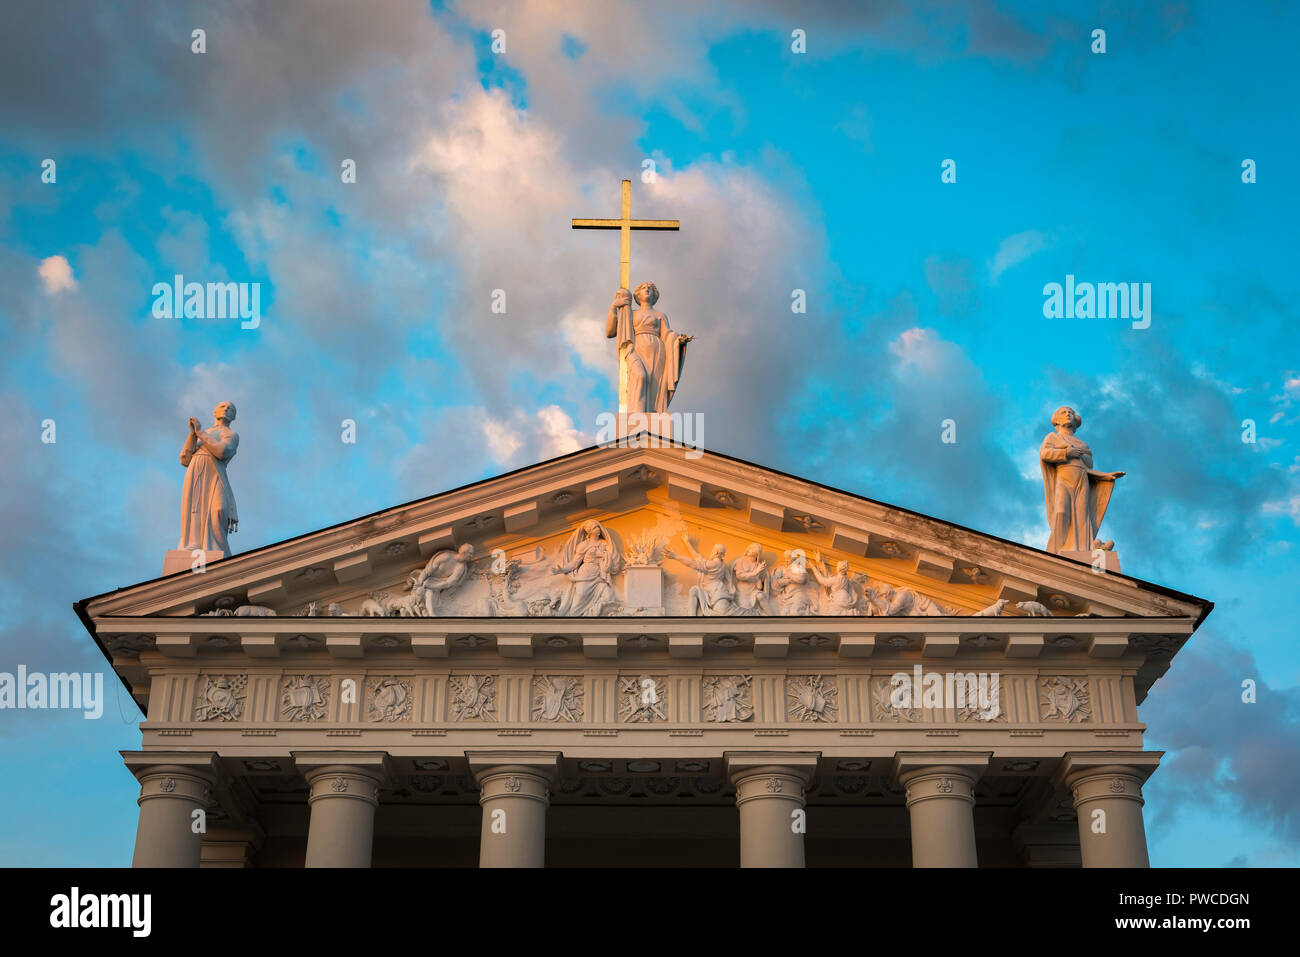 Cathedral Vilnius, sunset view of statues sited above the neoclassical pediment of the Vilnius Cathedral of St Stanislav and St Vladislav, Lithuania. - Stock Image